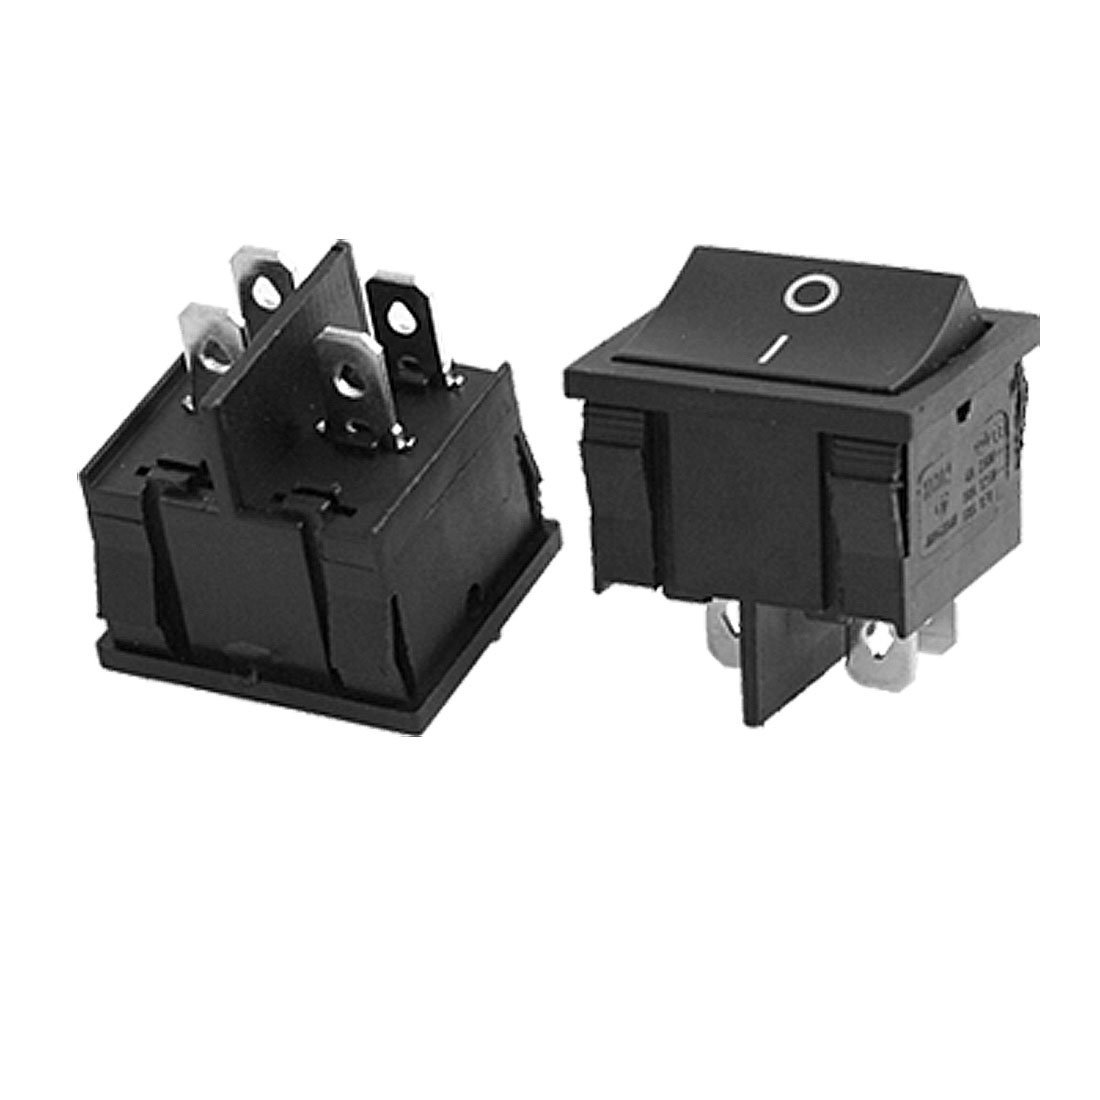 uxcell AC 6A/250V 10A/125V 4 Pin ON/OFF 2 Position DPST Snap In Boat Rocker Switch 5 Pcs